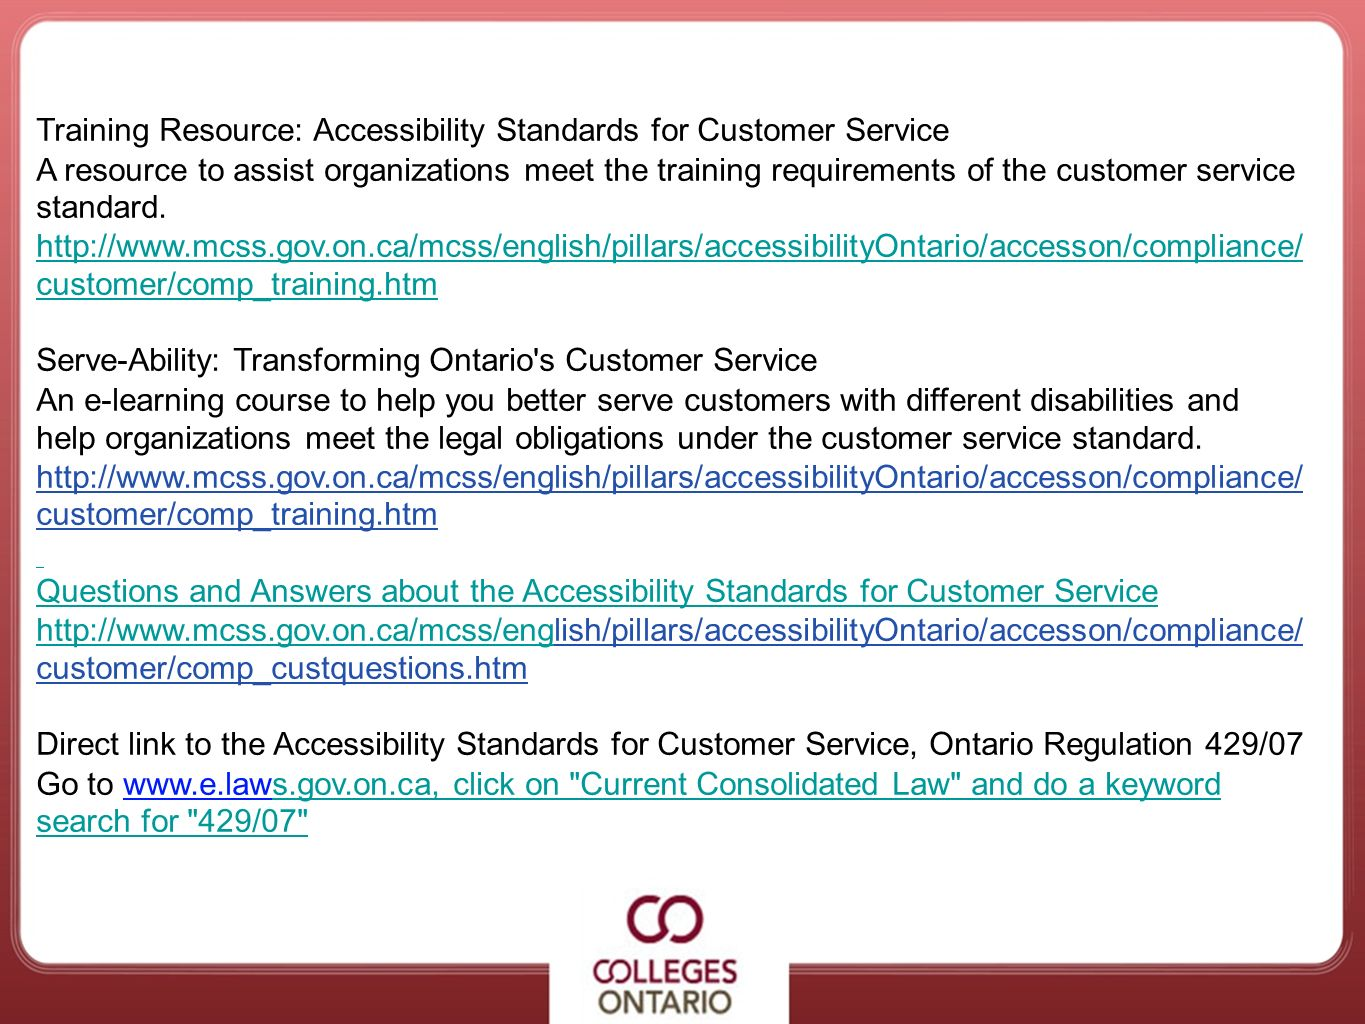 Training Resource: Accessibility Standards for Customer Service